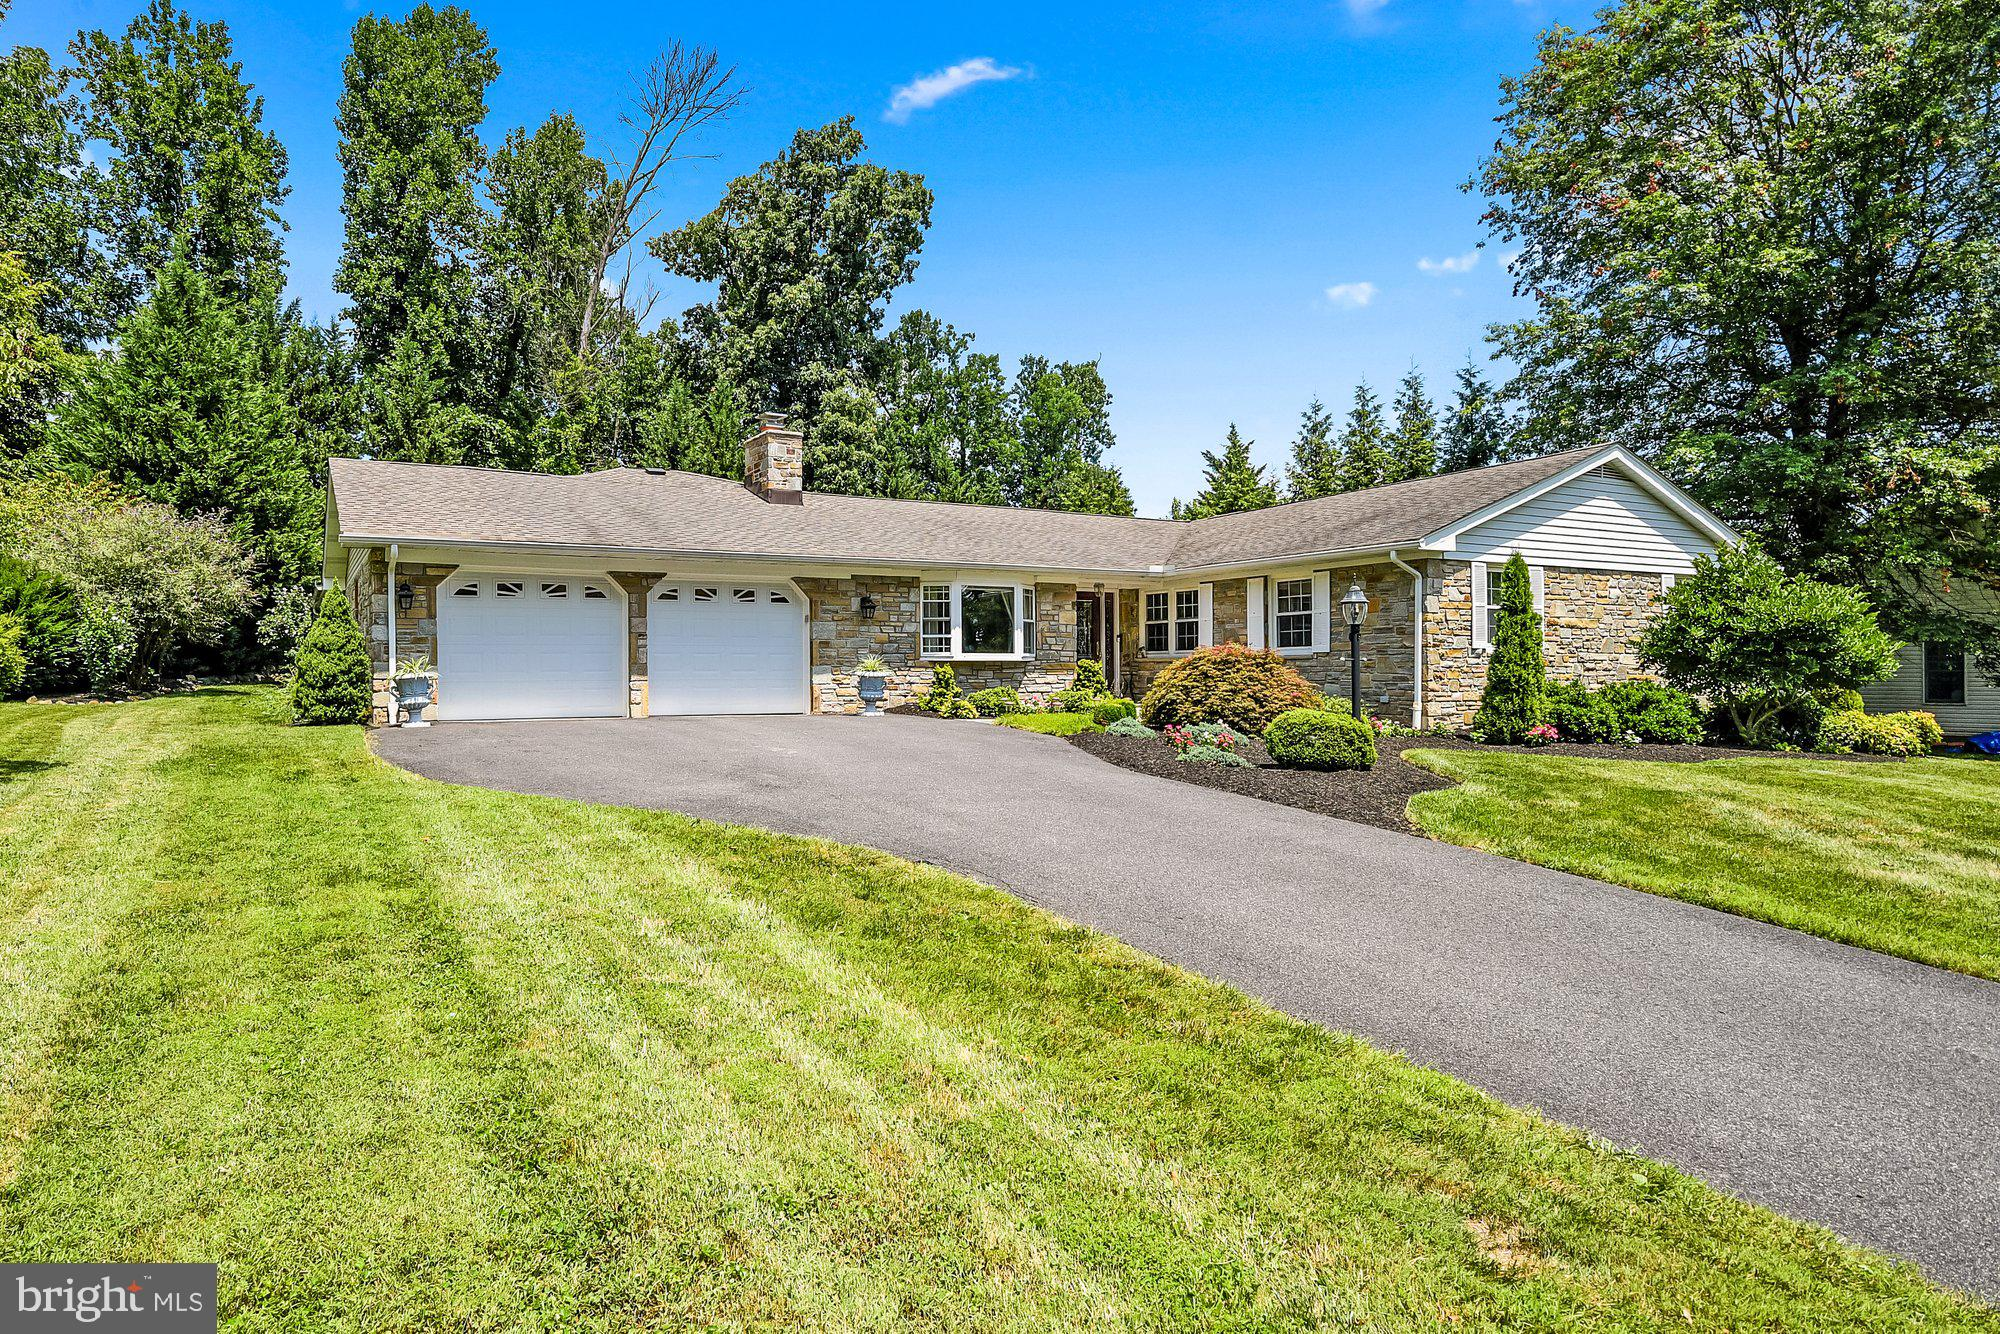 Beautifully updated, 3 Bed 2 Bath Stone Rancher situated on a private .51AC lot. No expenses spared!